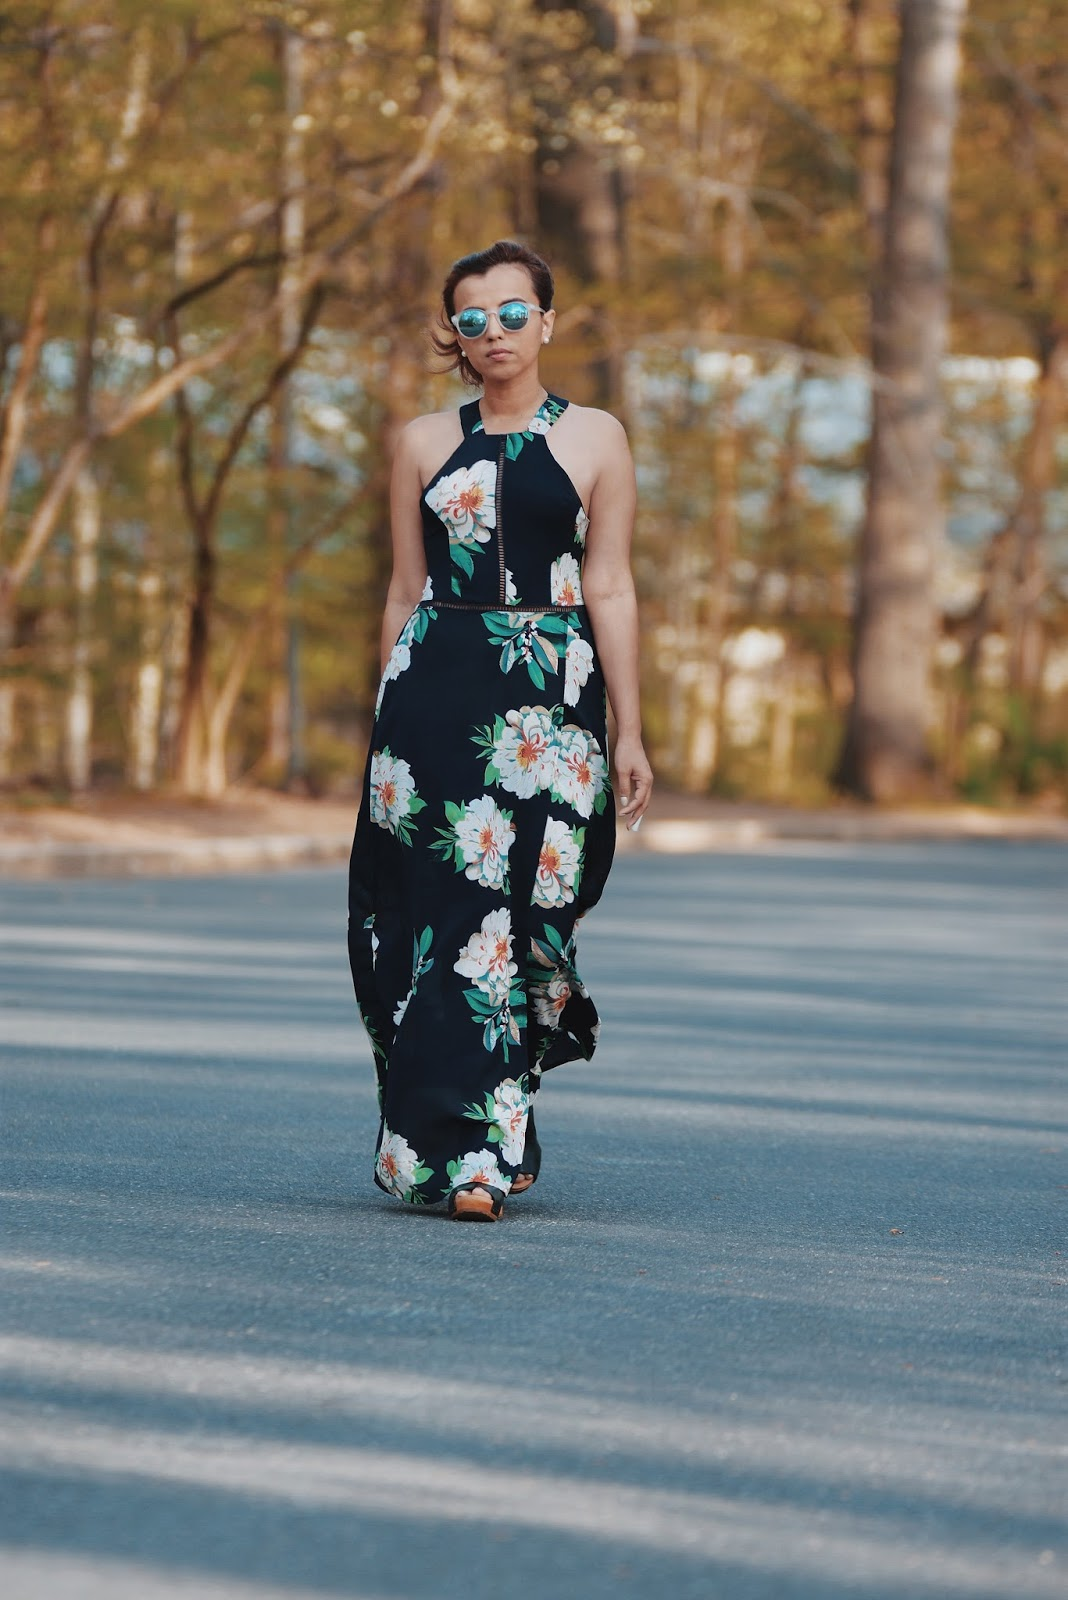 Floral-Print Split Summer Maxi Dress by Mari Estilo-Sunski sunglasses-fashionblogger-lookoftheday-dcblogger-